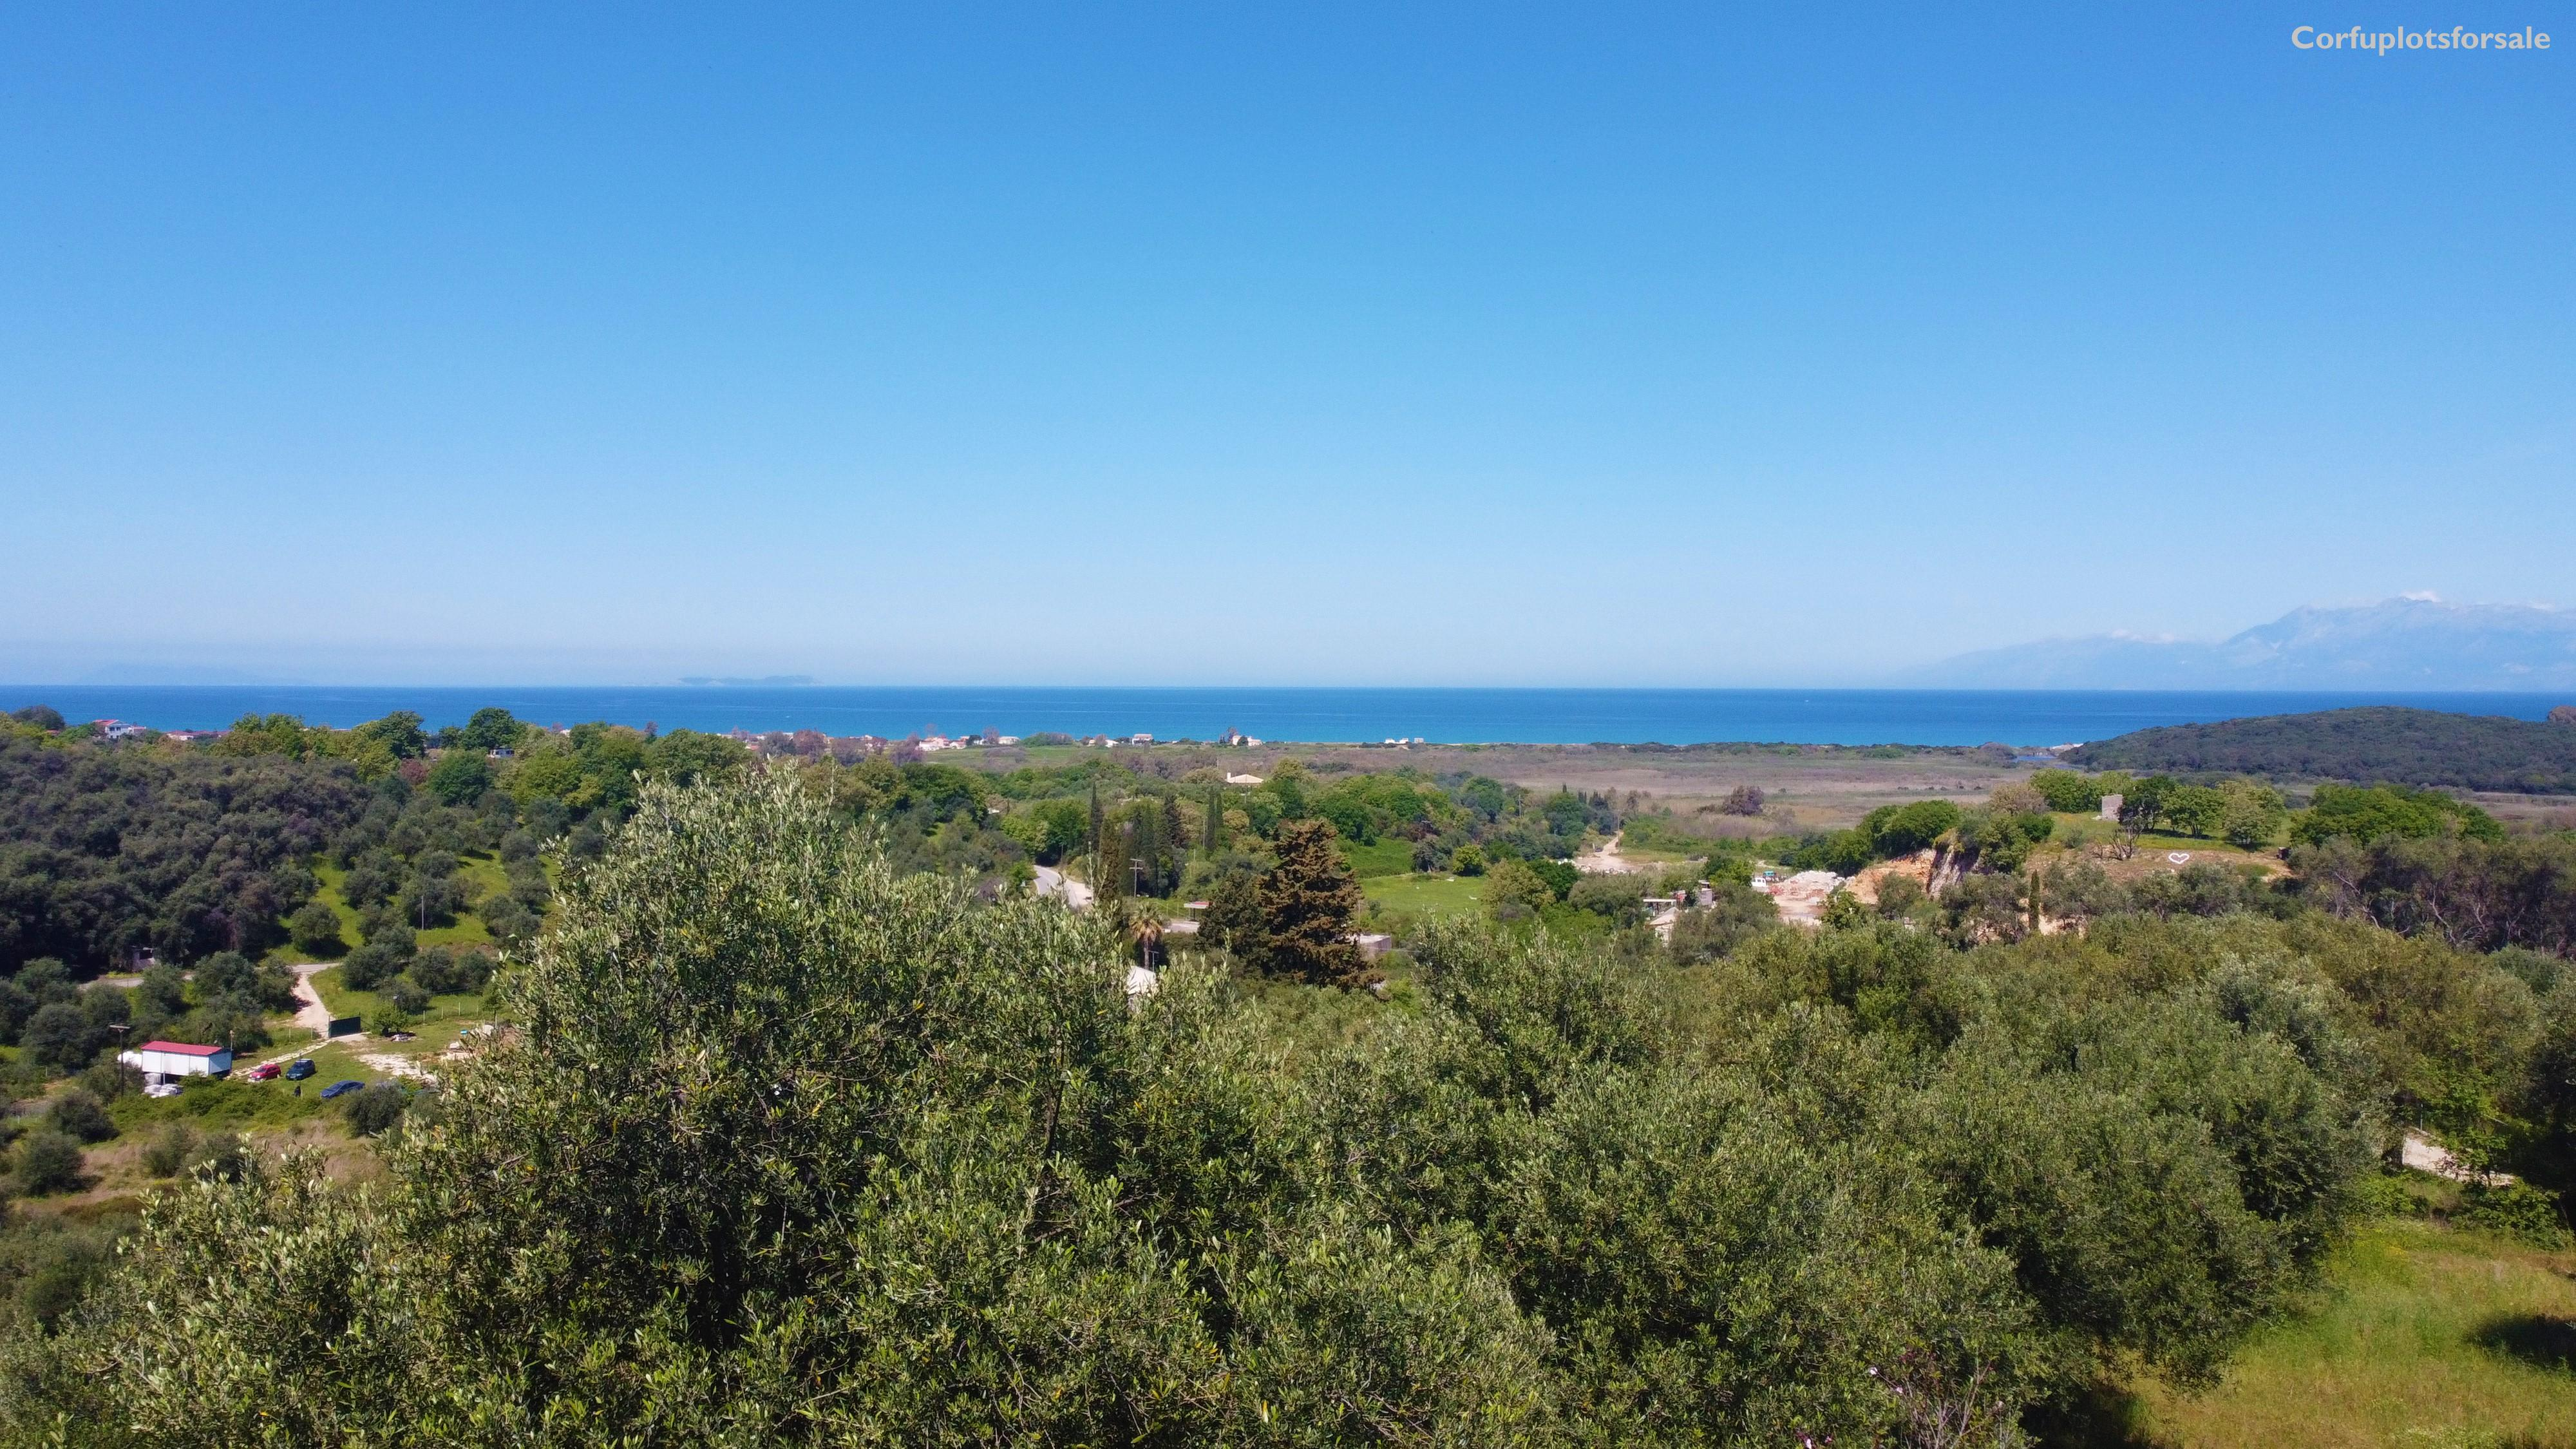 Bargain price for a land with beautiful view in secluded area